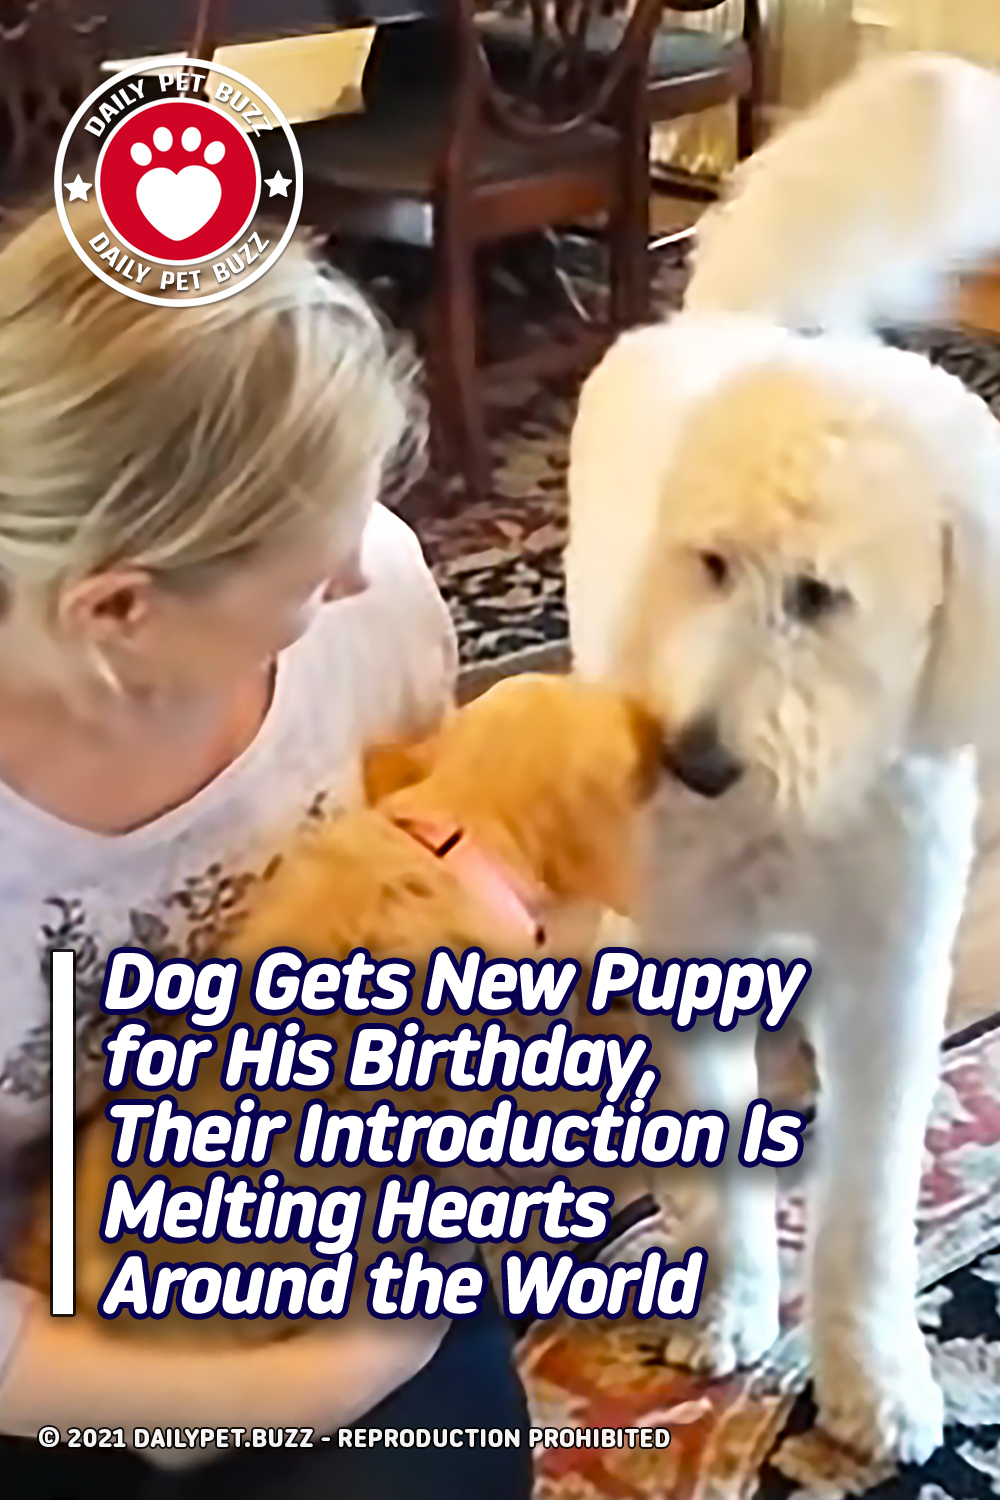 Dog Gets New Puppy for His Birthday, Their Introduction Is Melting Hearts Around the World